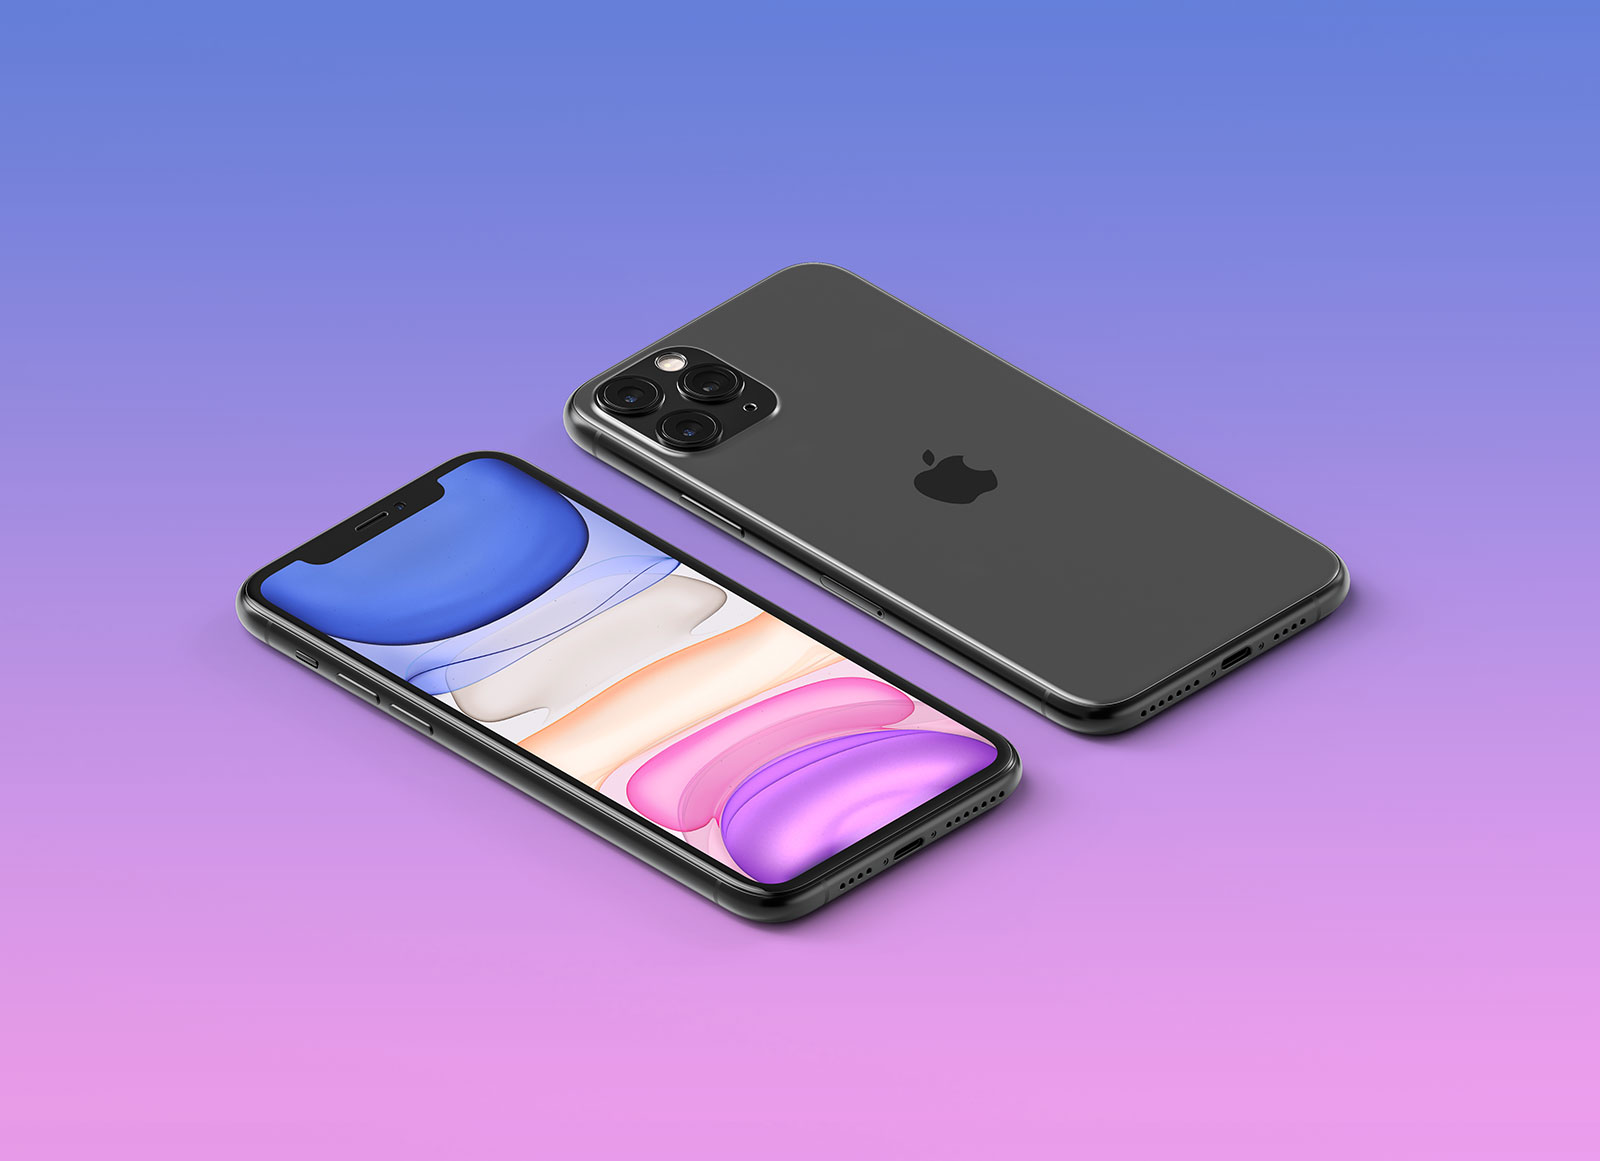 Free-HQ-Isometric-Apple-iPhone-11-Pro-Max-Mockup-PSD